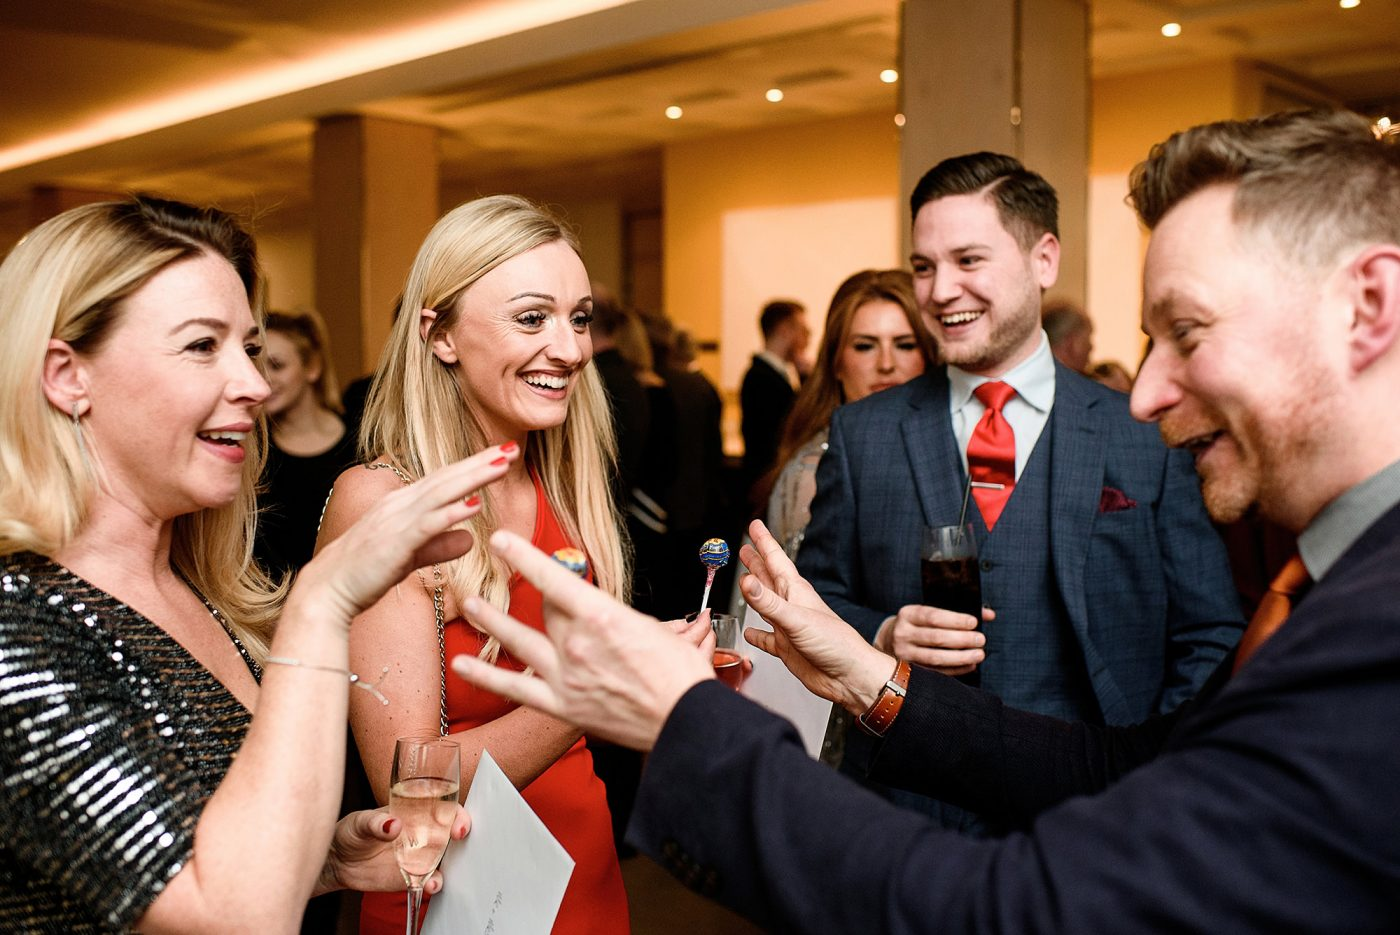 magician wows guests